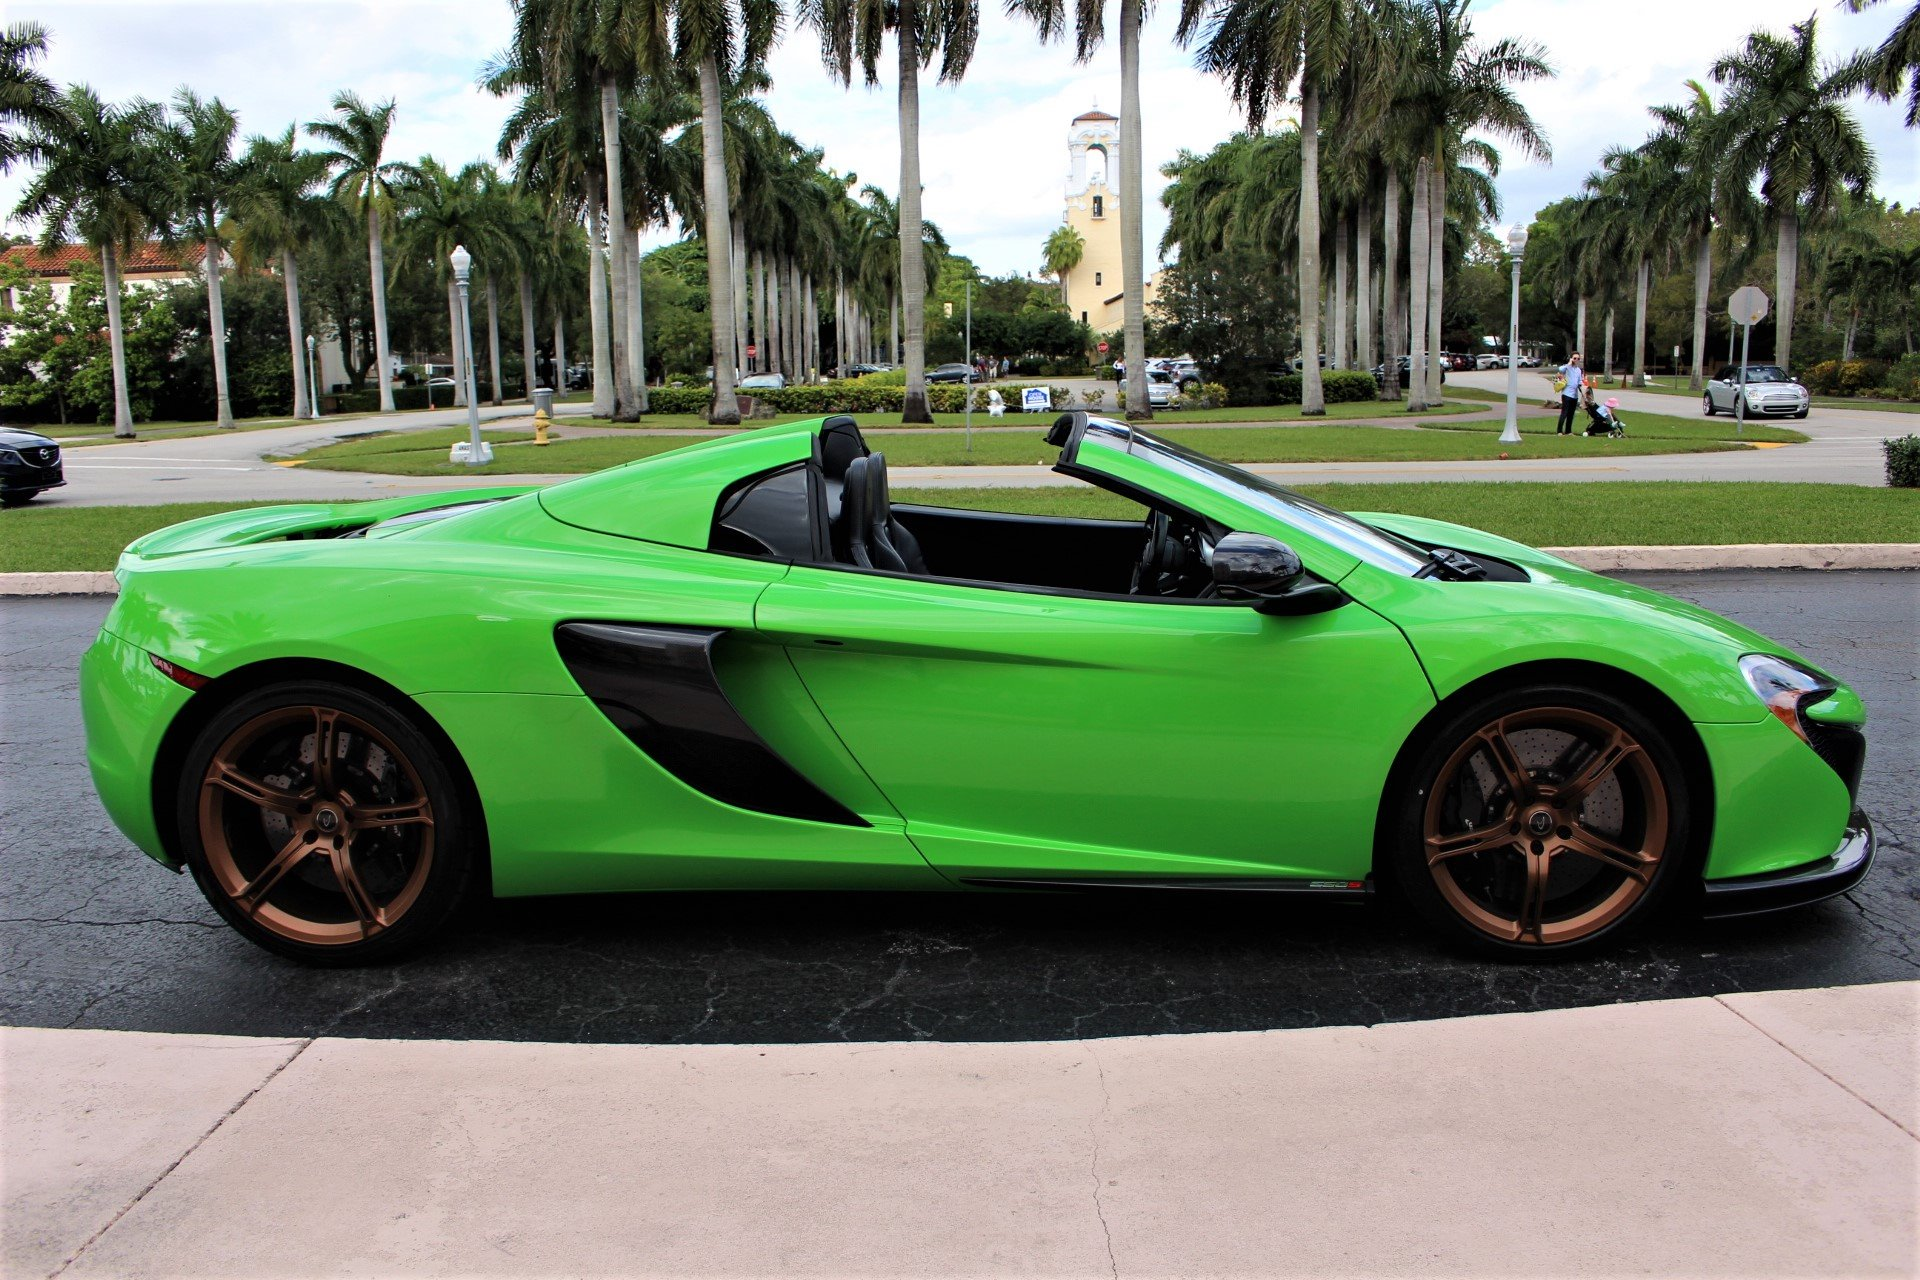 Used 2016 McLaren 650S Spider for sale $146,850 at The Gables Sports Cars in Miami FL 33146 3